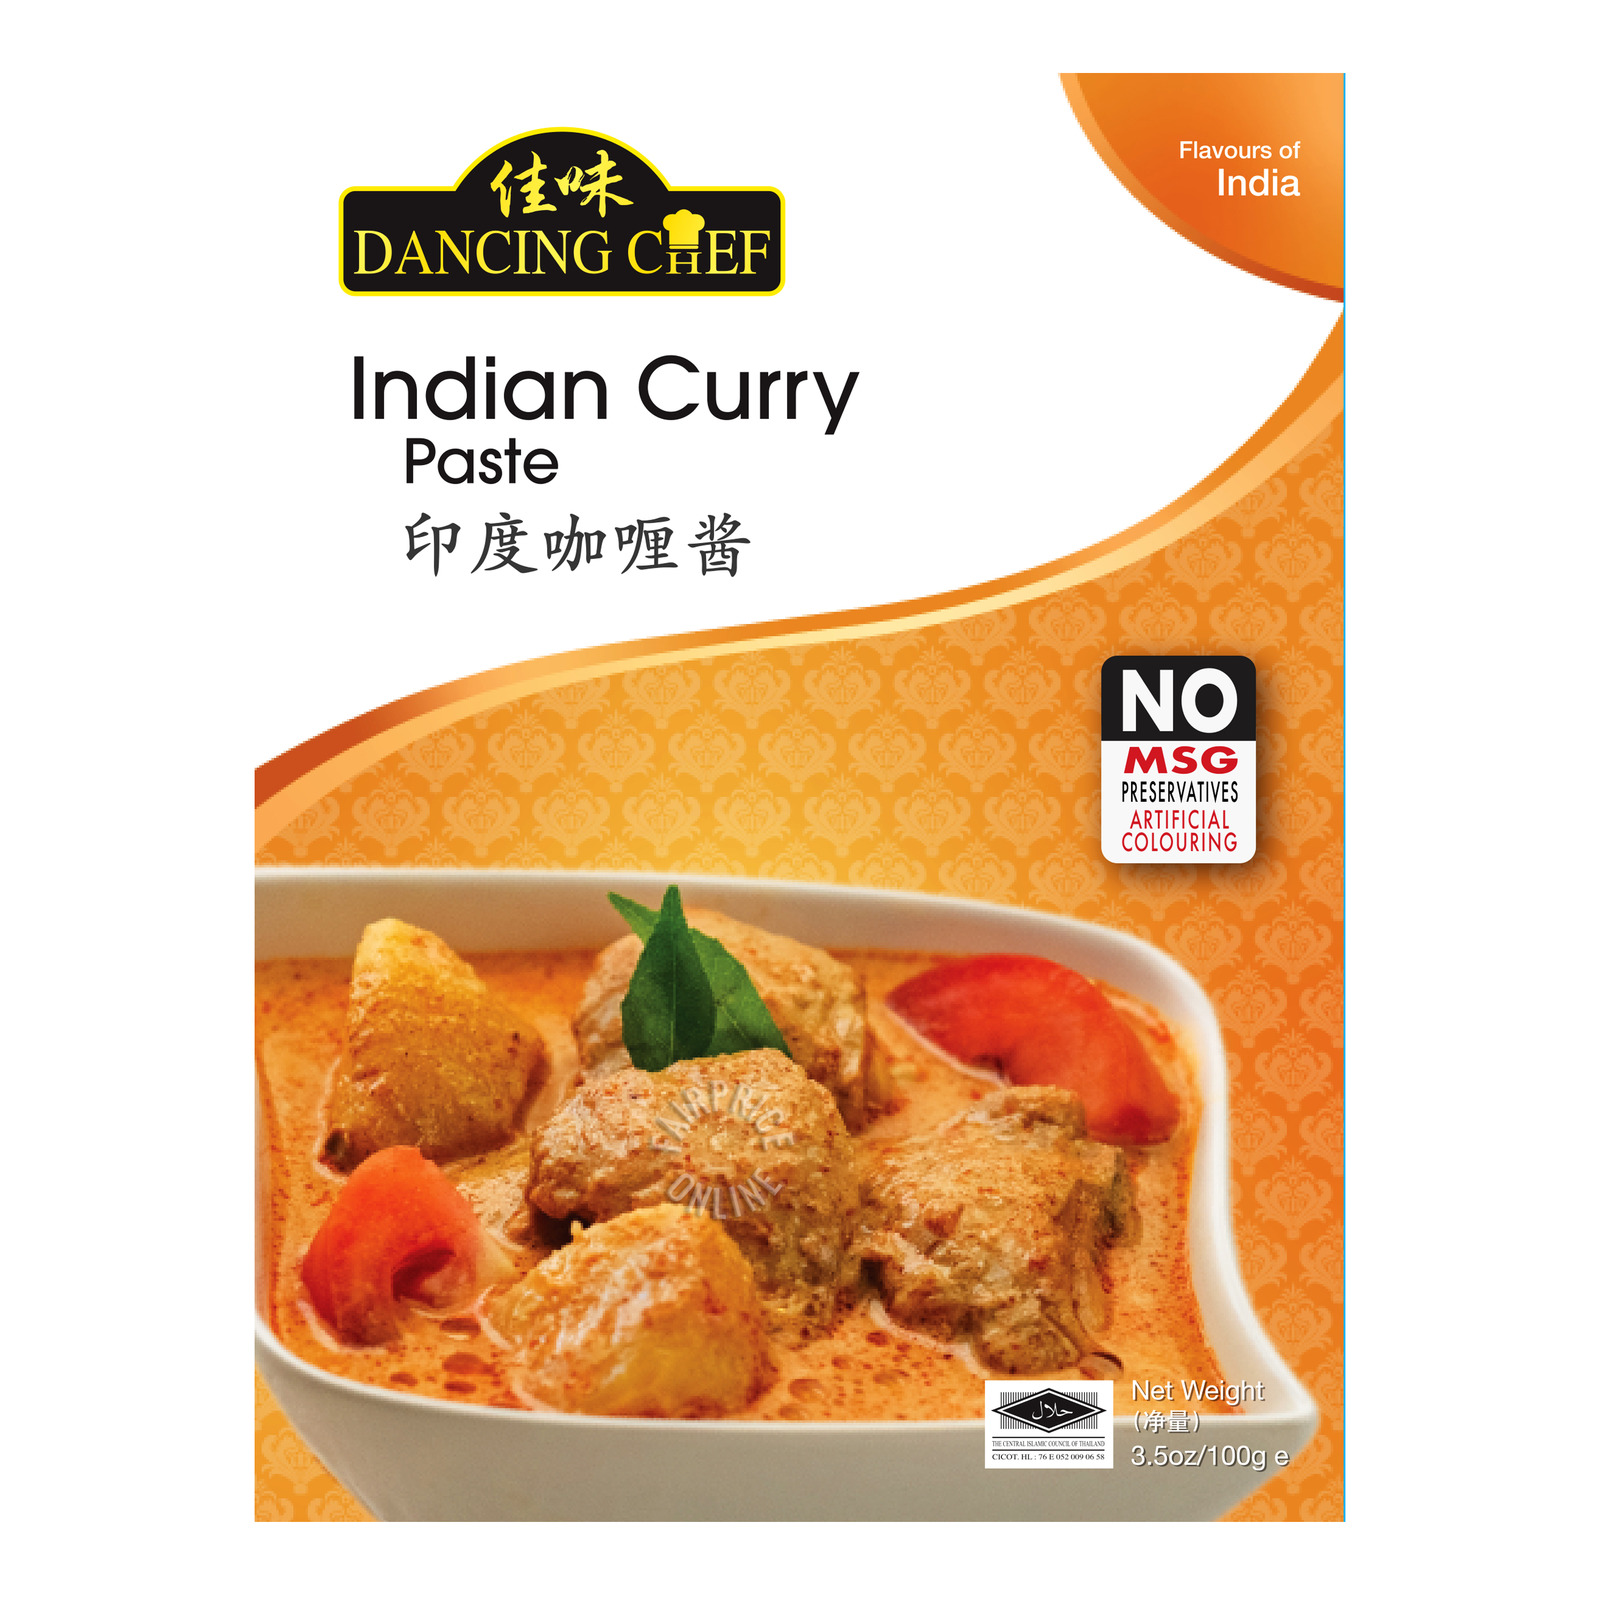 Dancing Chef Indian Curry Paste 100g No MSG No Artificial Coloring